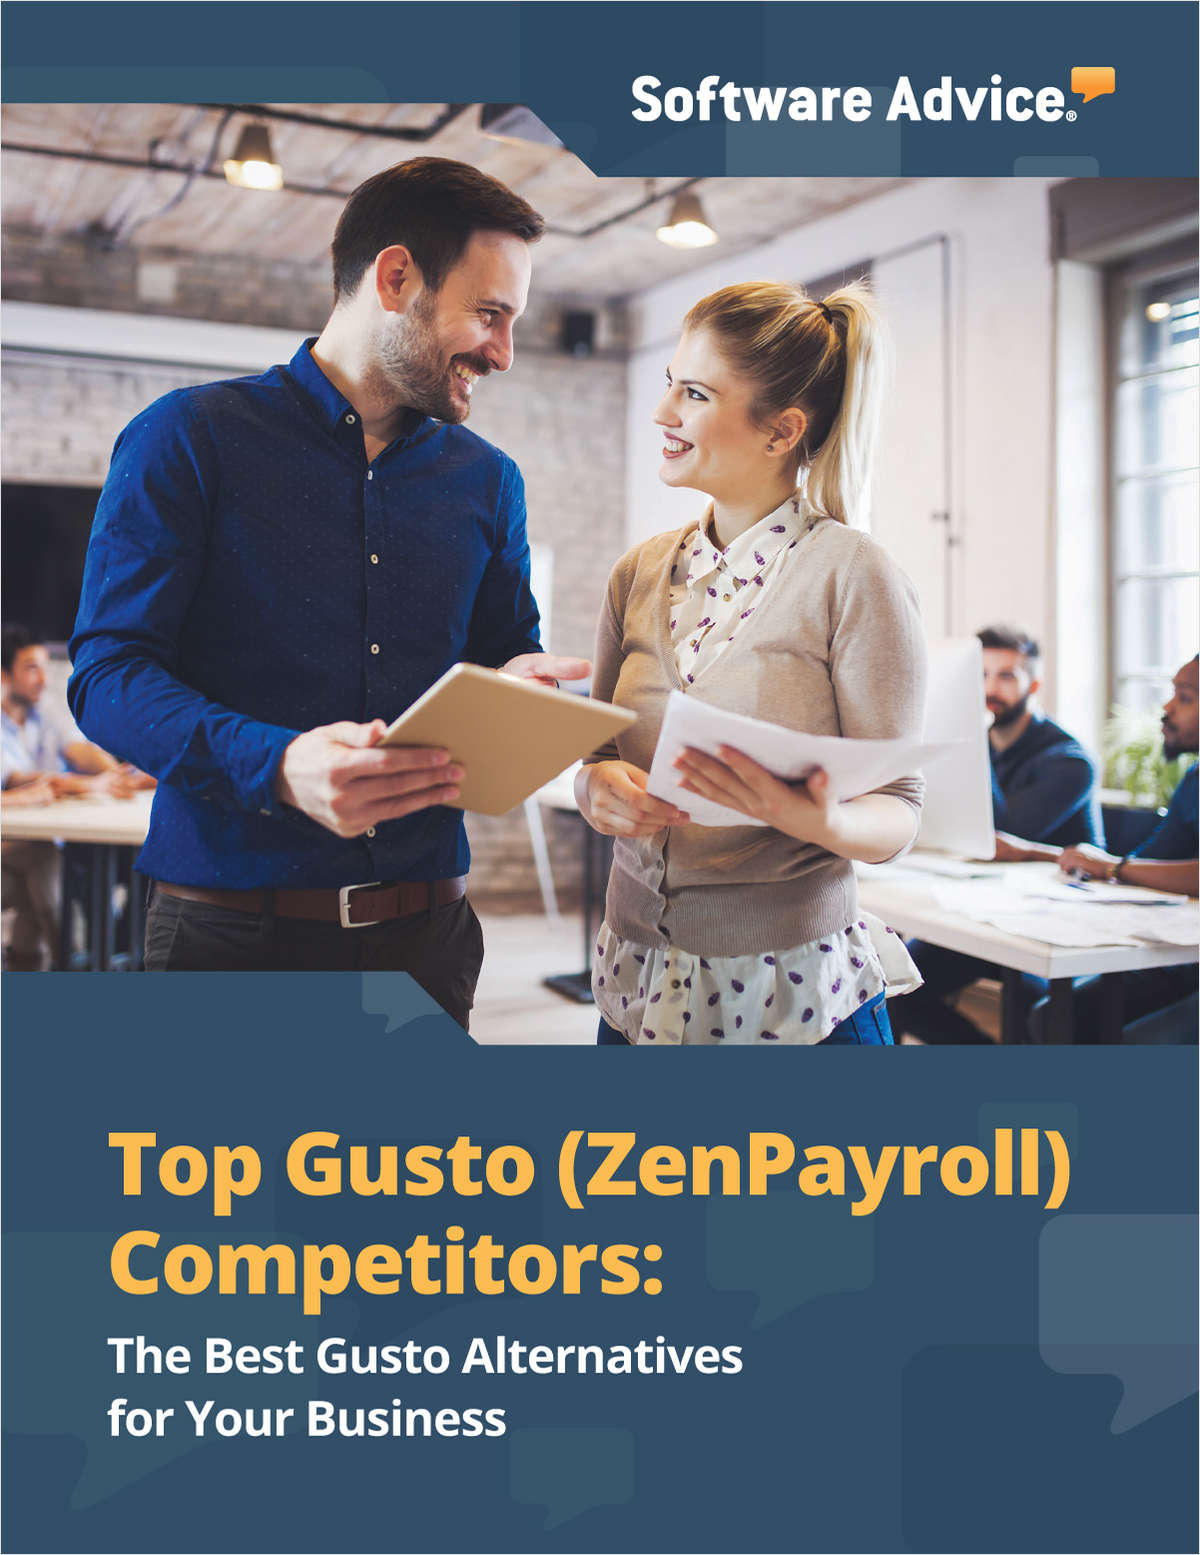 Top Recommended Gusto Competitors and Alternatives